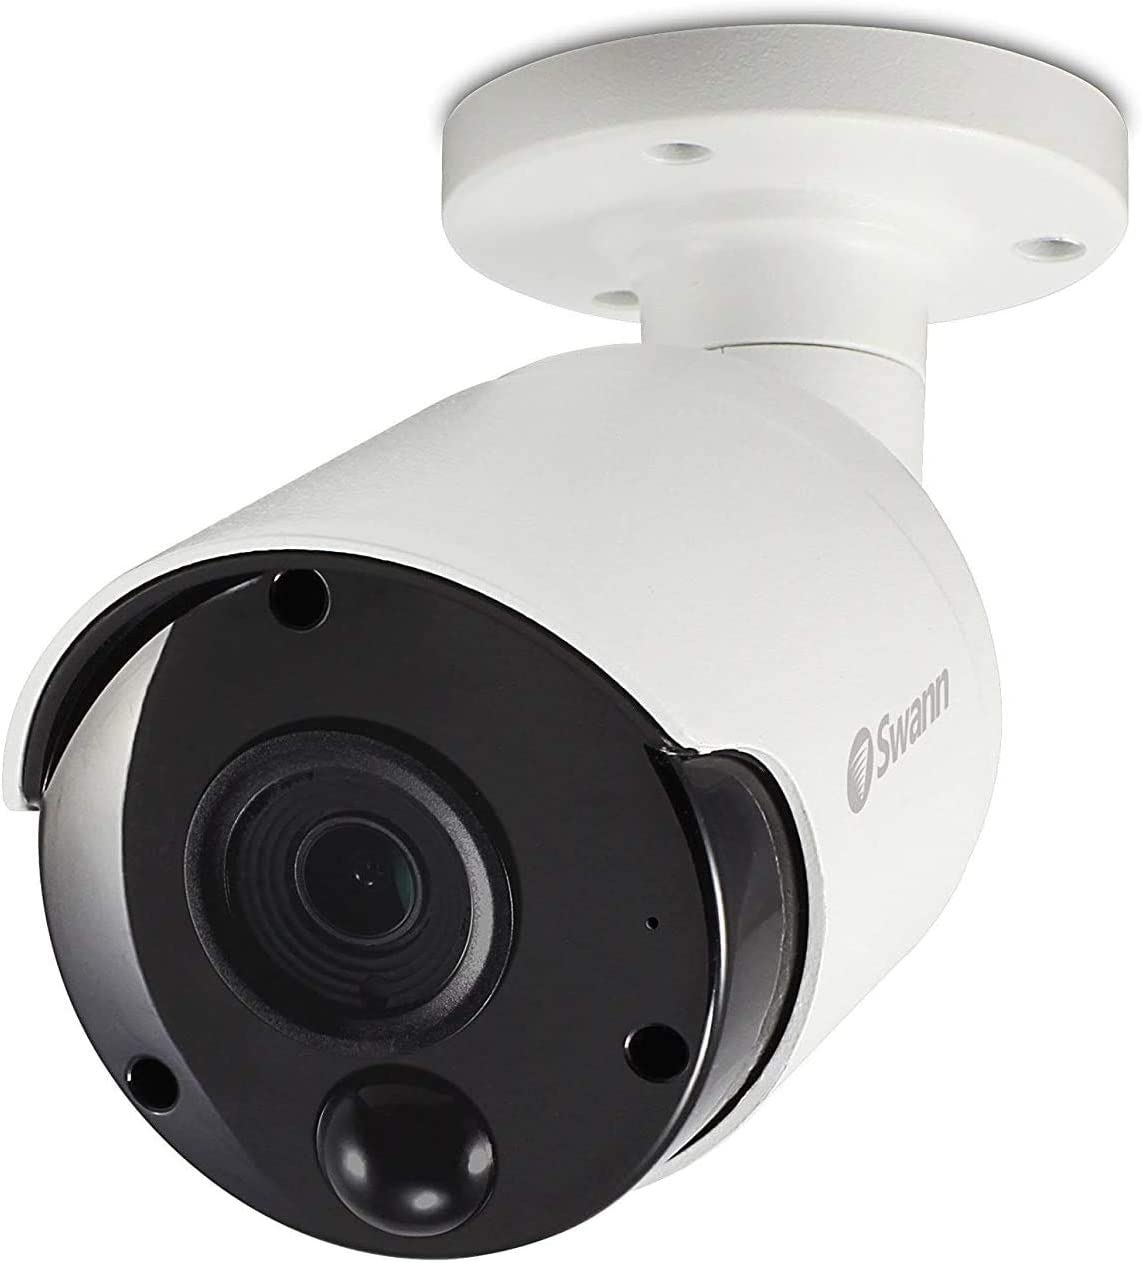 Swann Wired PIR Bullet Security Camera